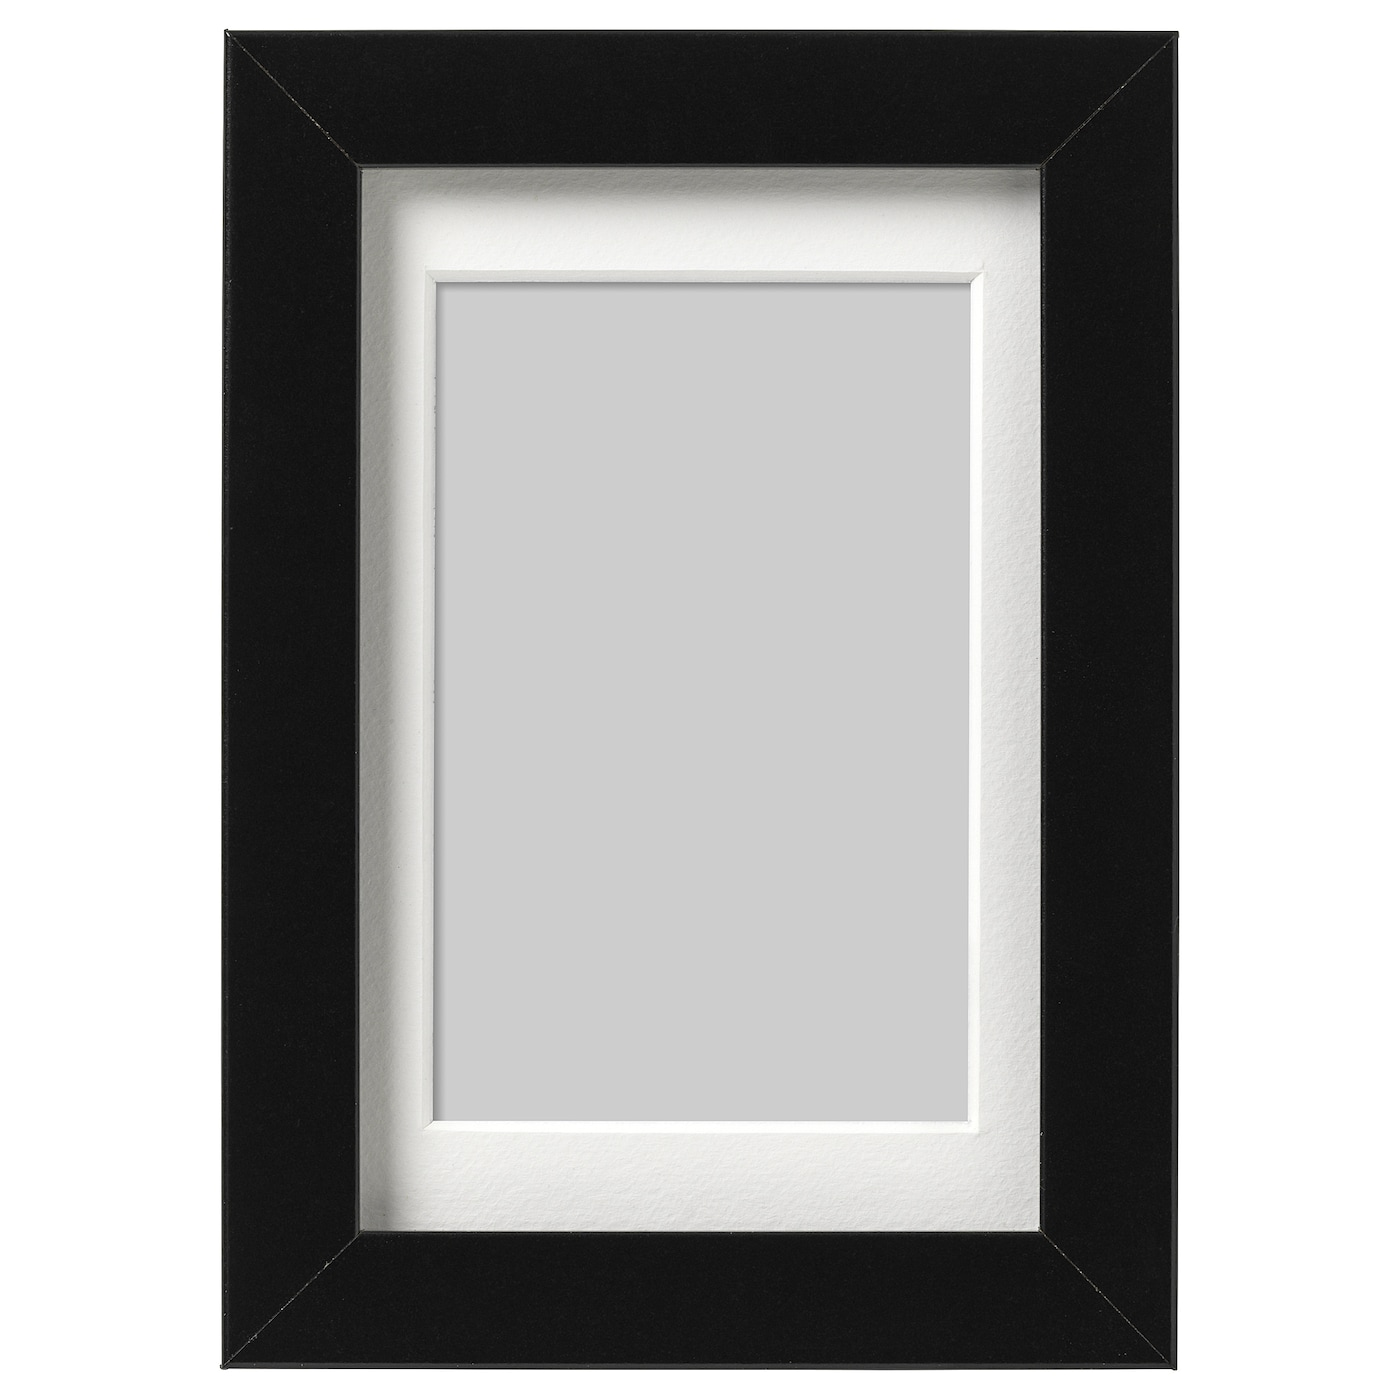 Multi Aperture Lw Picture Photo Black Frame With Black Mount /& Choice Of Sizes